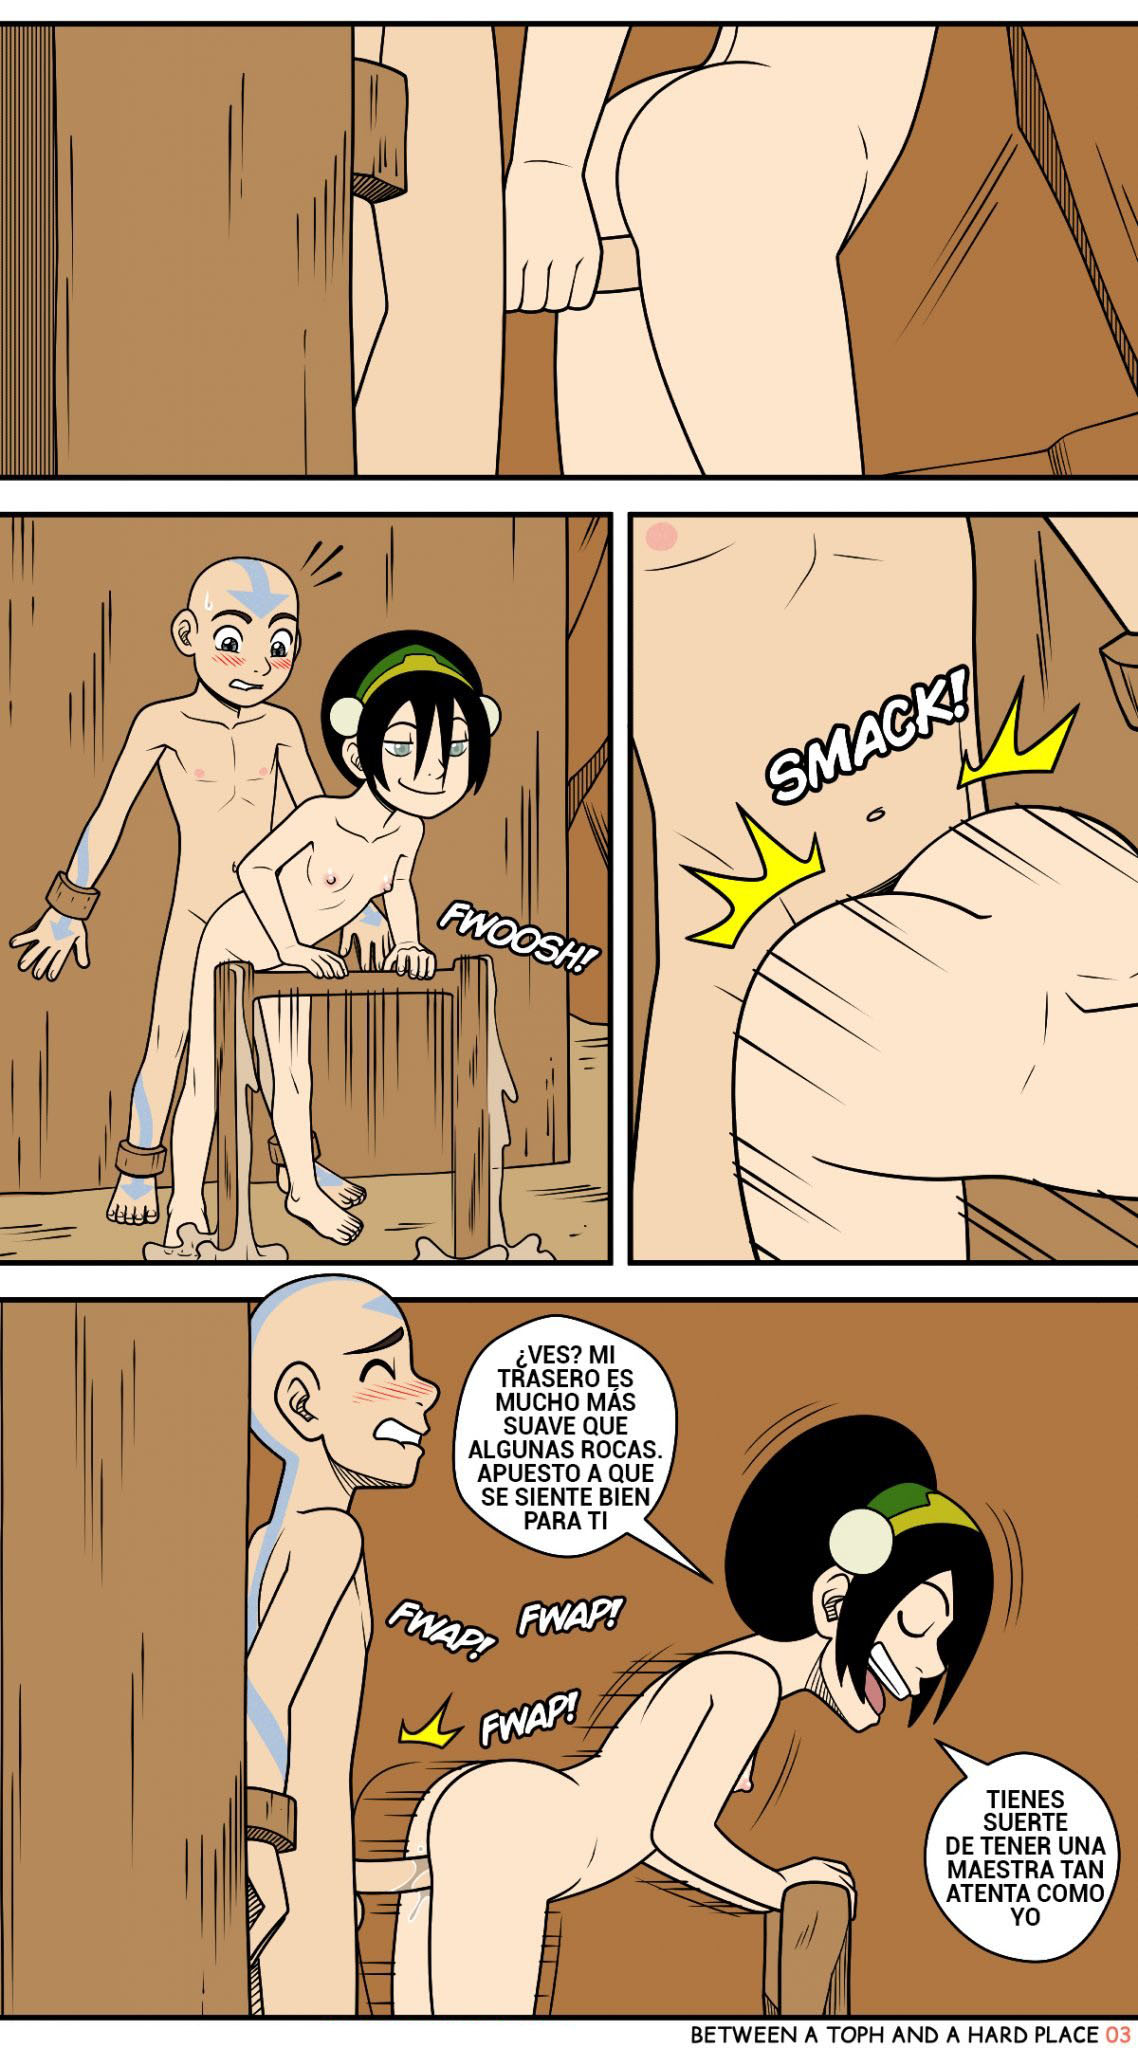 BETWEEN a TOPH and a Hard Place